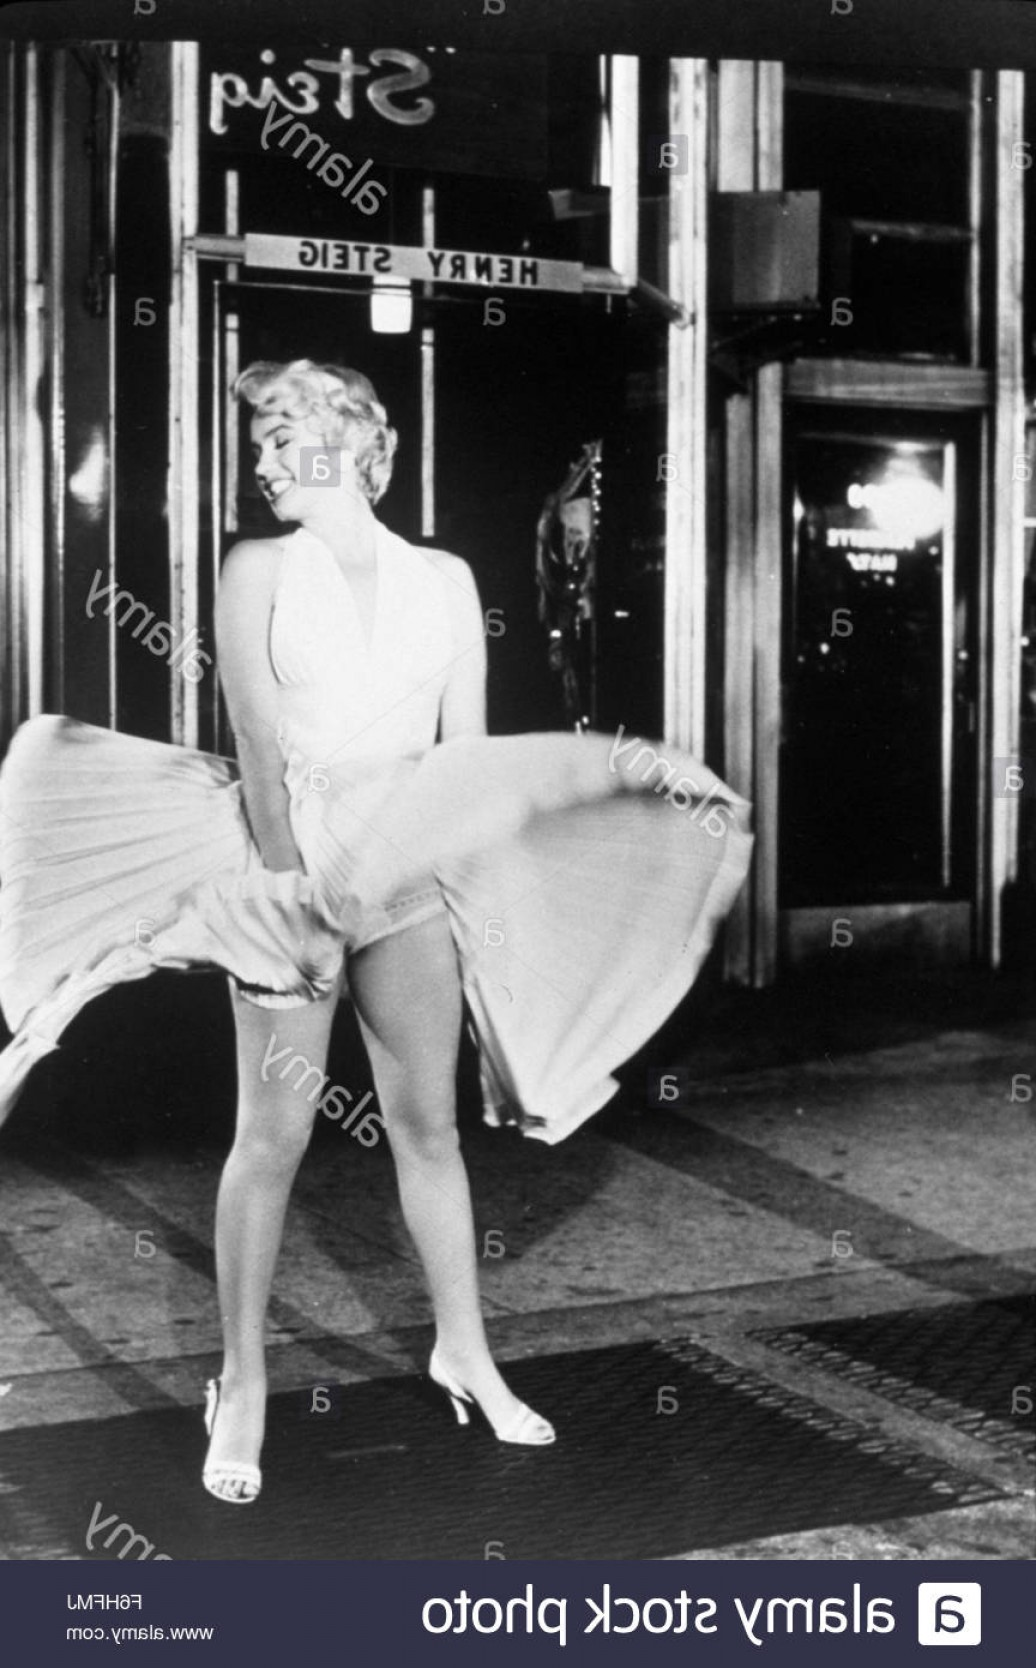 Marilyn Monroe Dress Vector: Stock Photo Film Title Seven Year Itch Director Billy Wilder Studio Fox Pictured